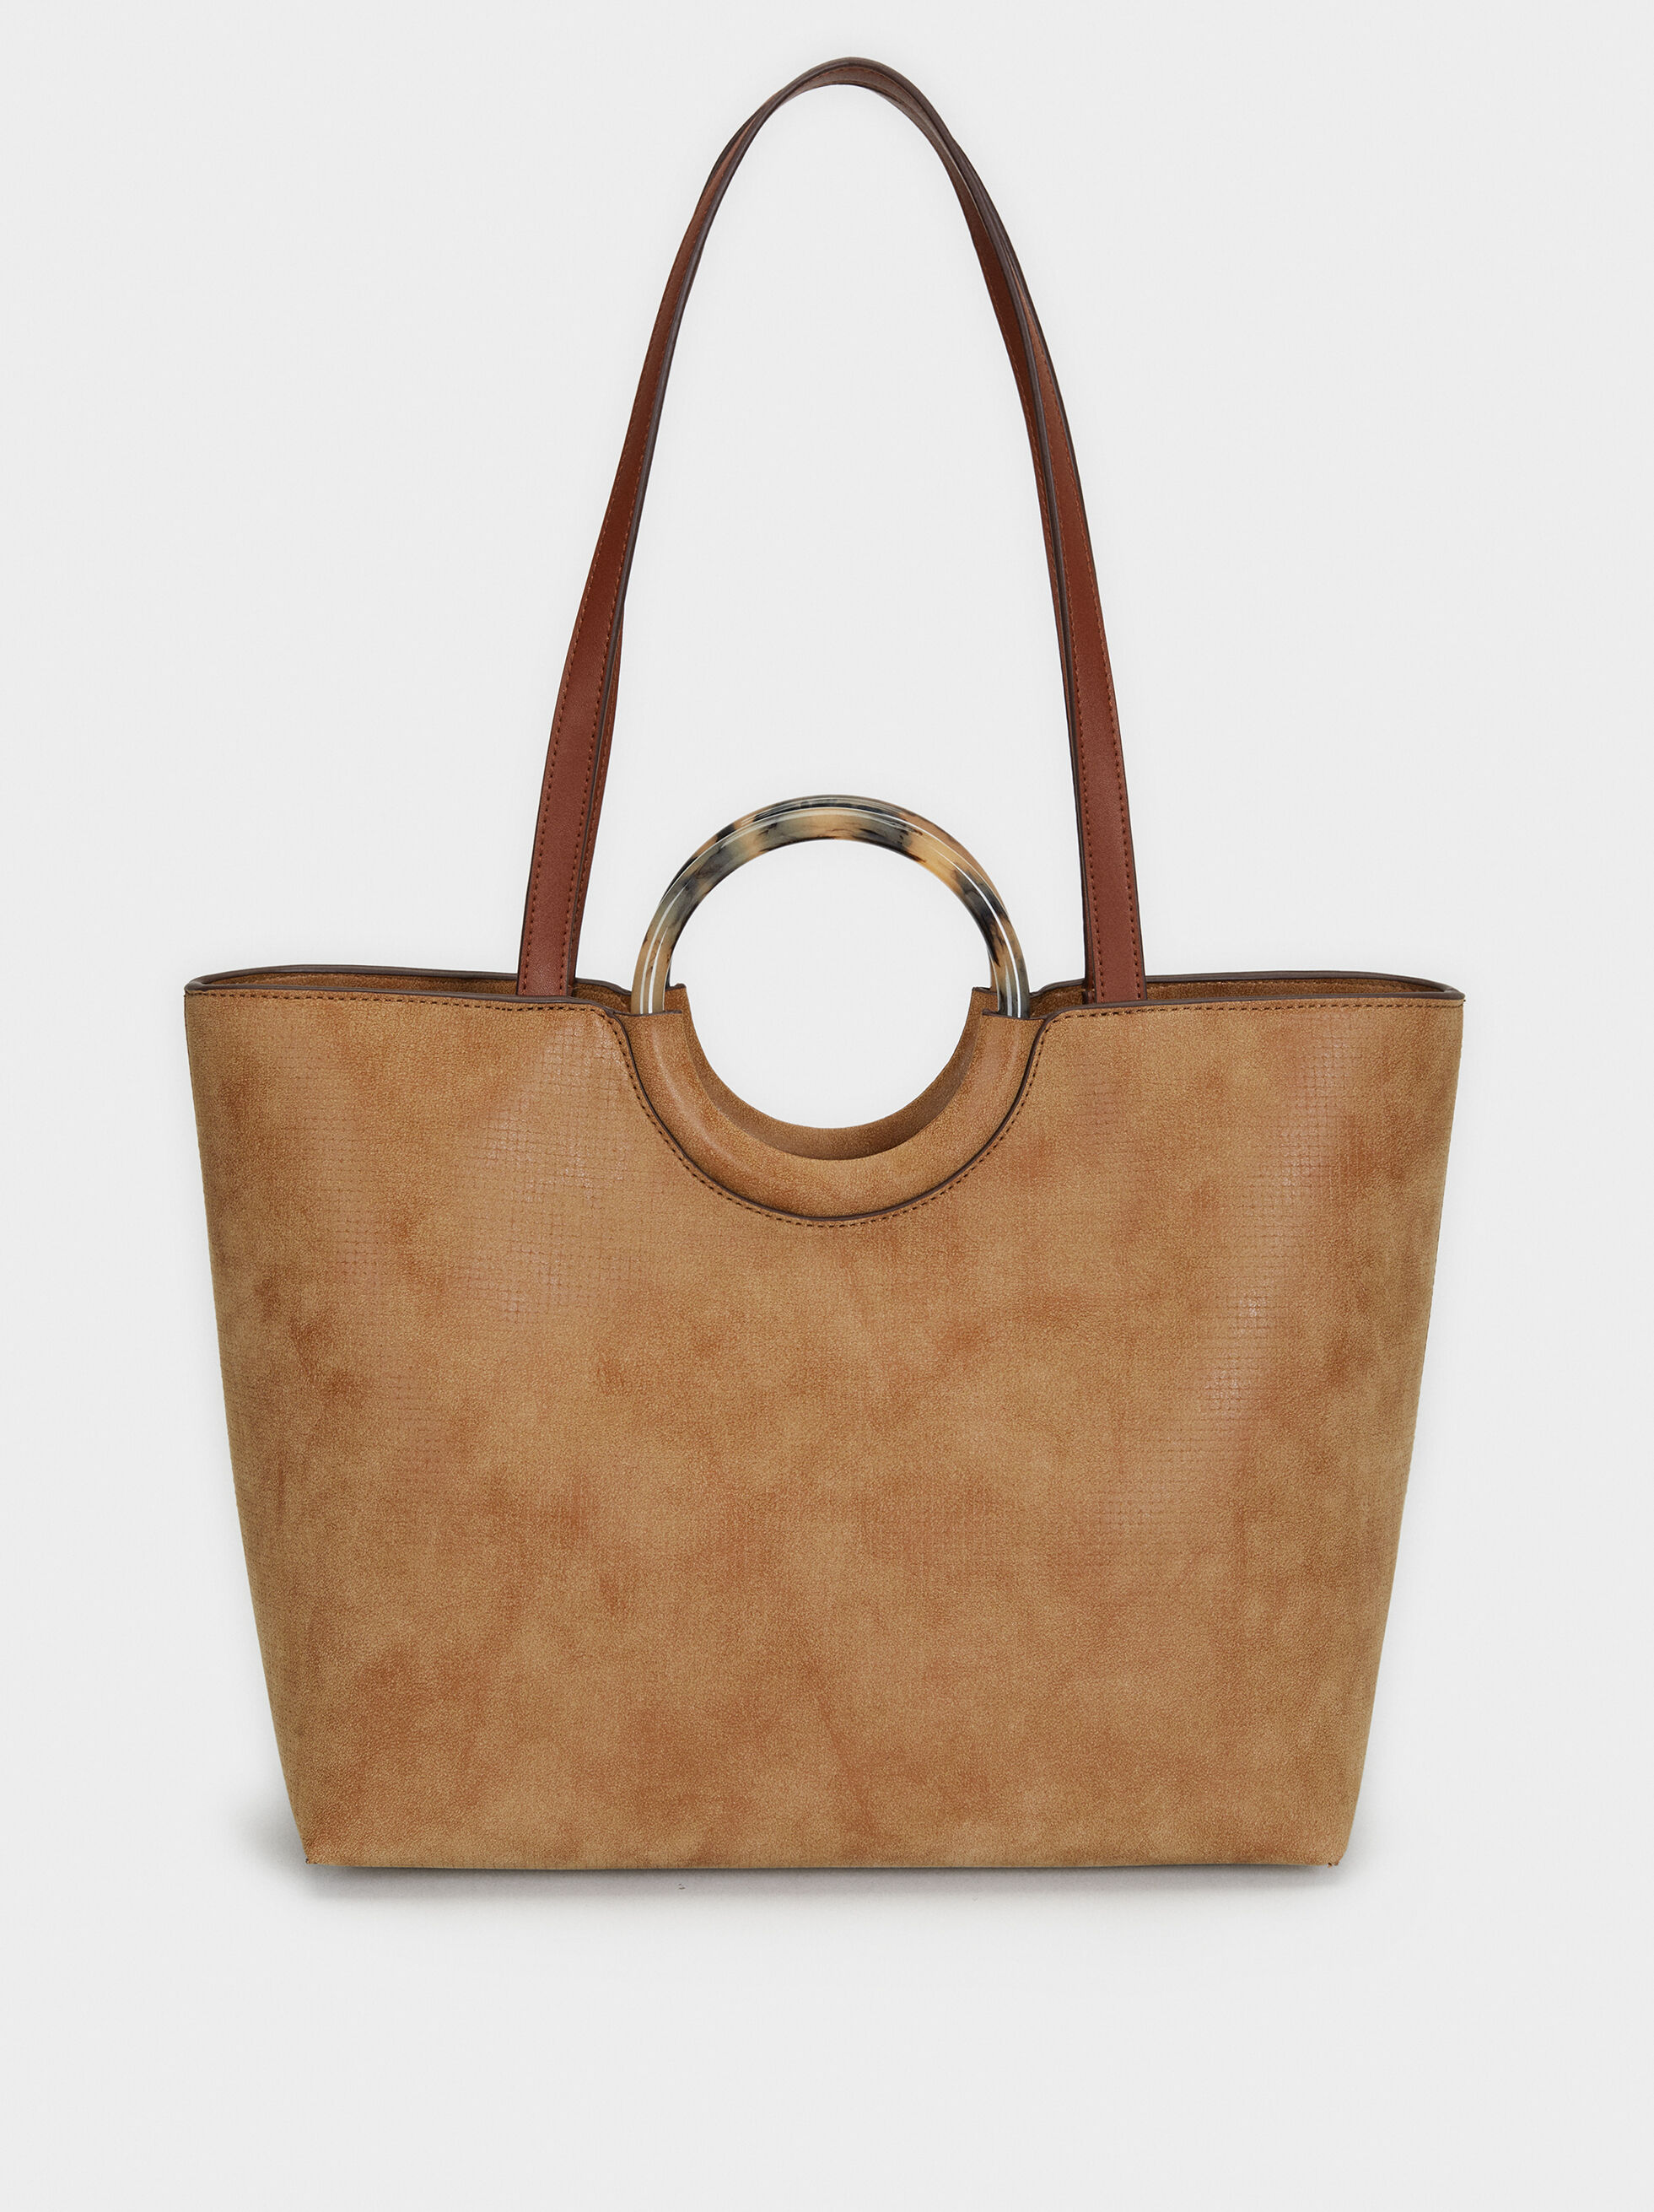 Tote Bag With Tortoiseshell Handle, , hi-res